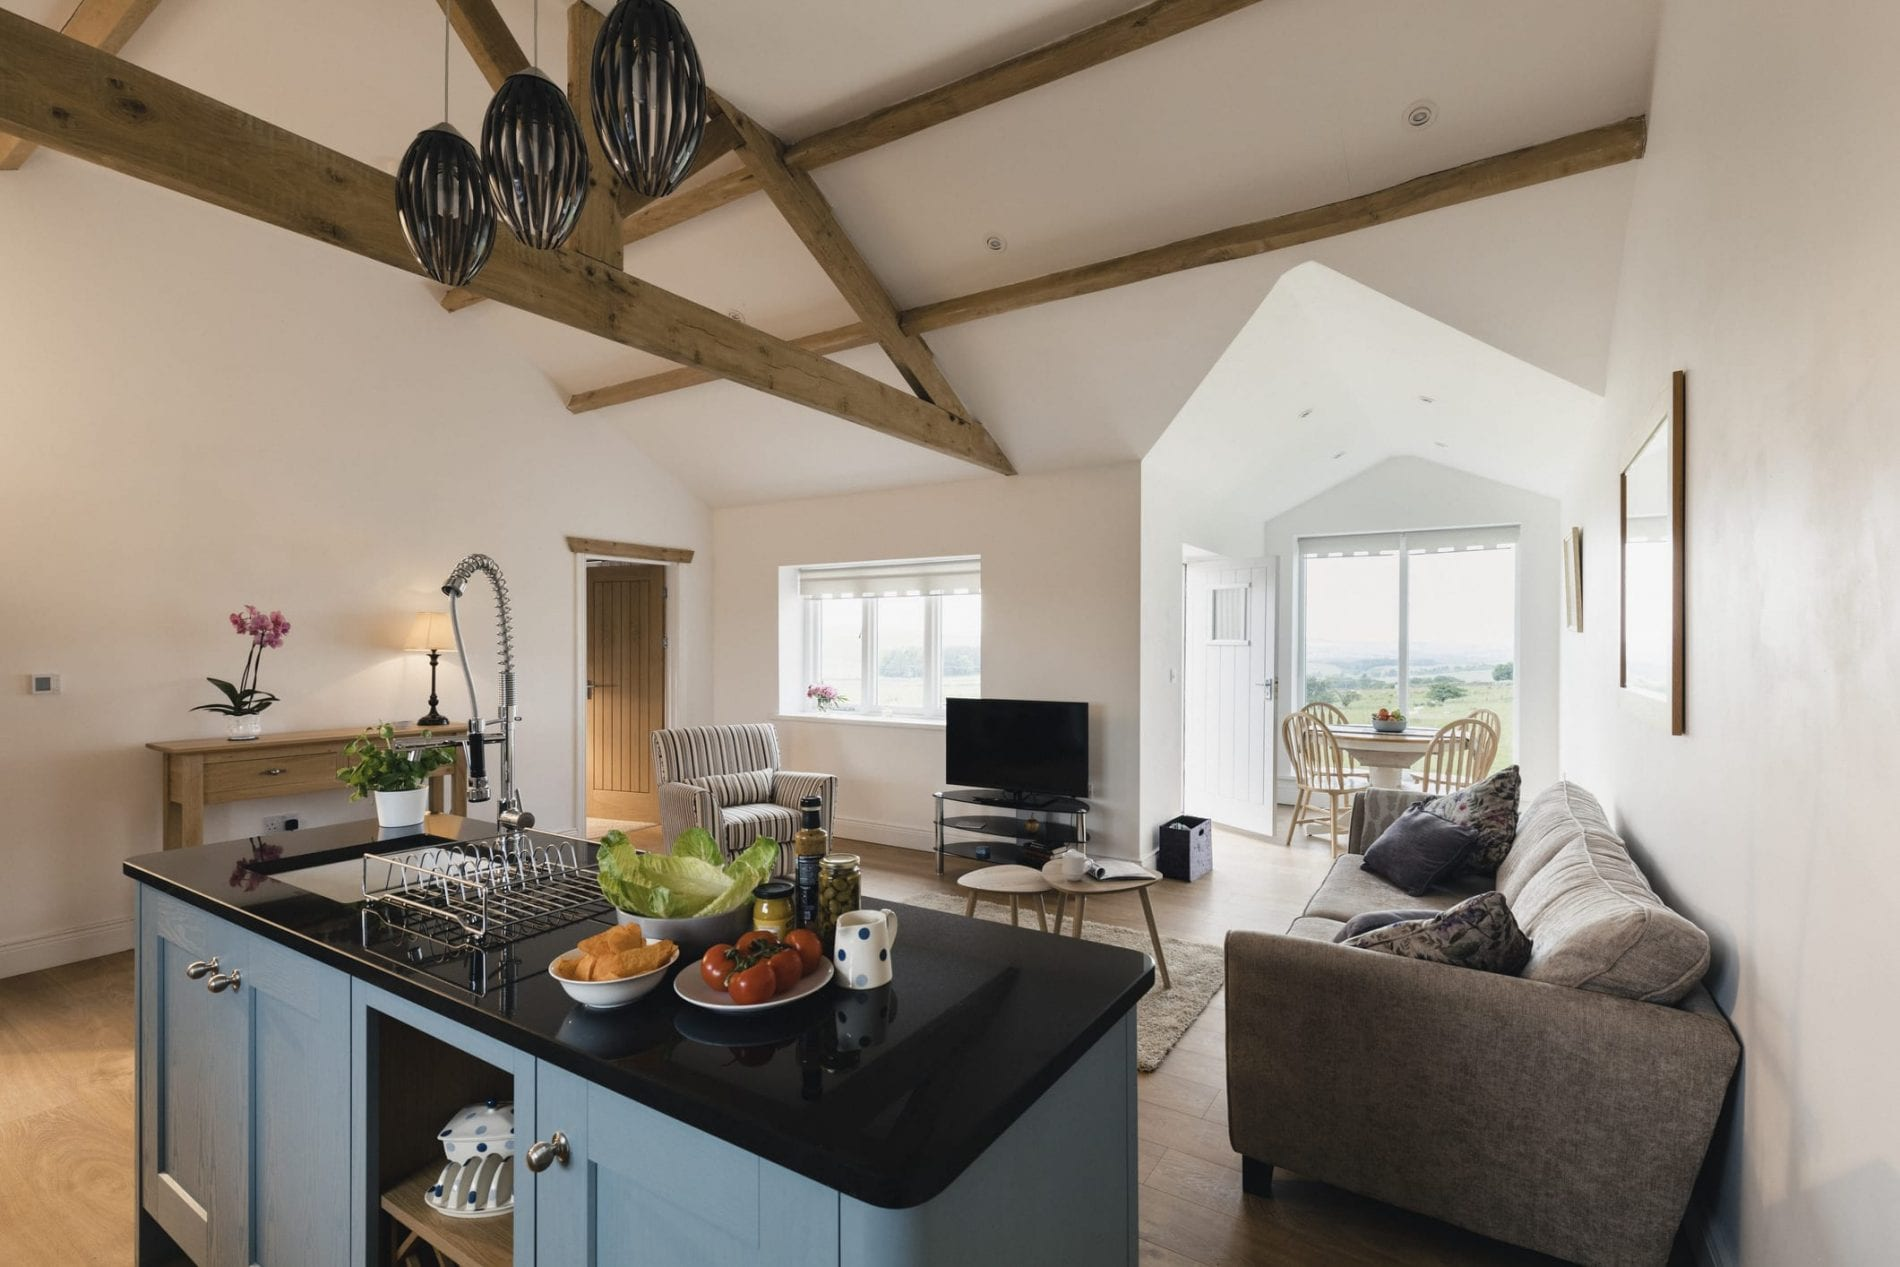 Home Extension Builders in Macclesfield Cheshire